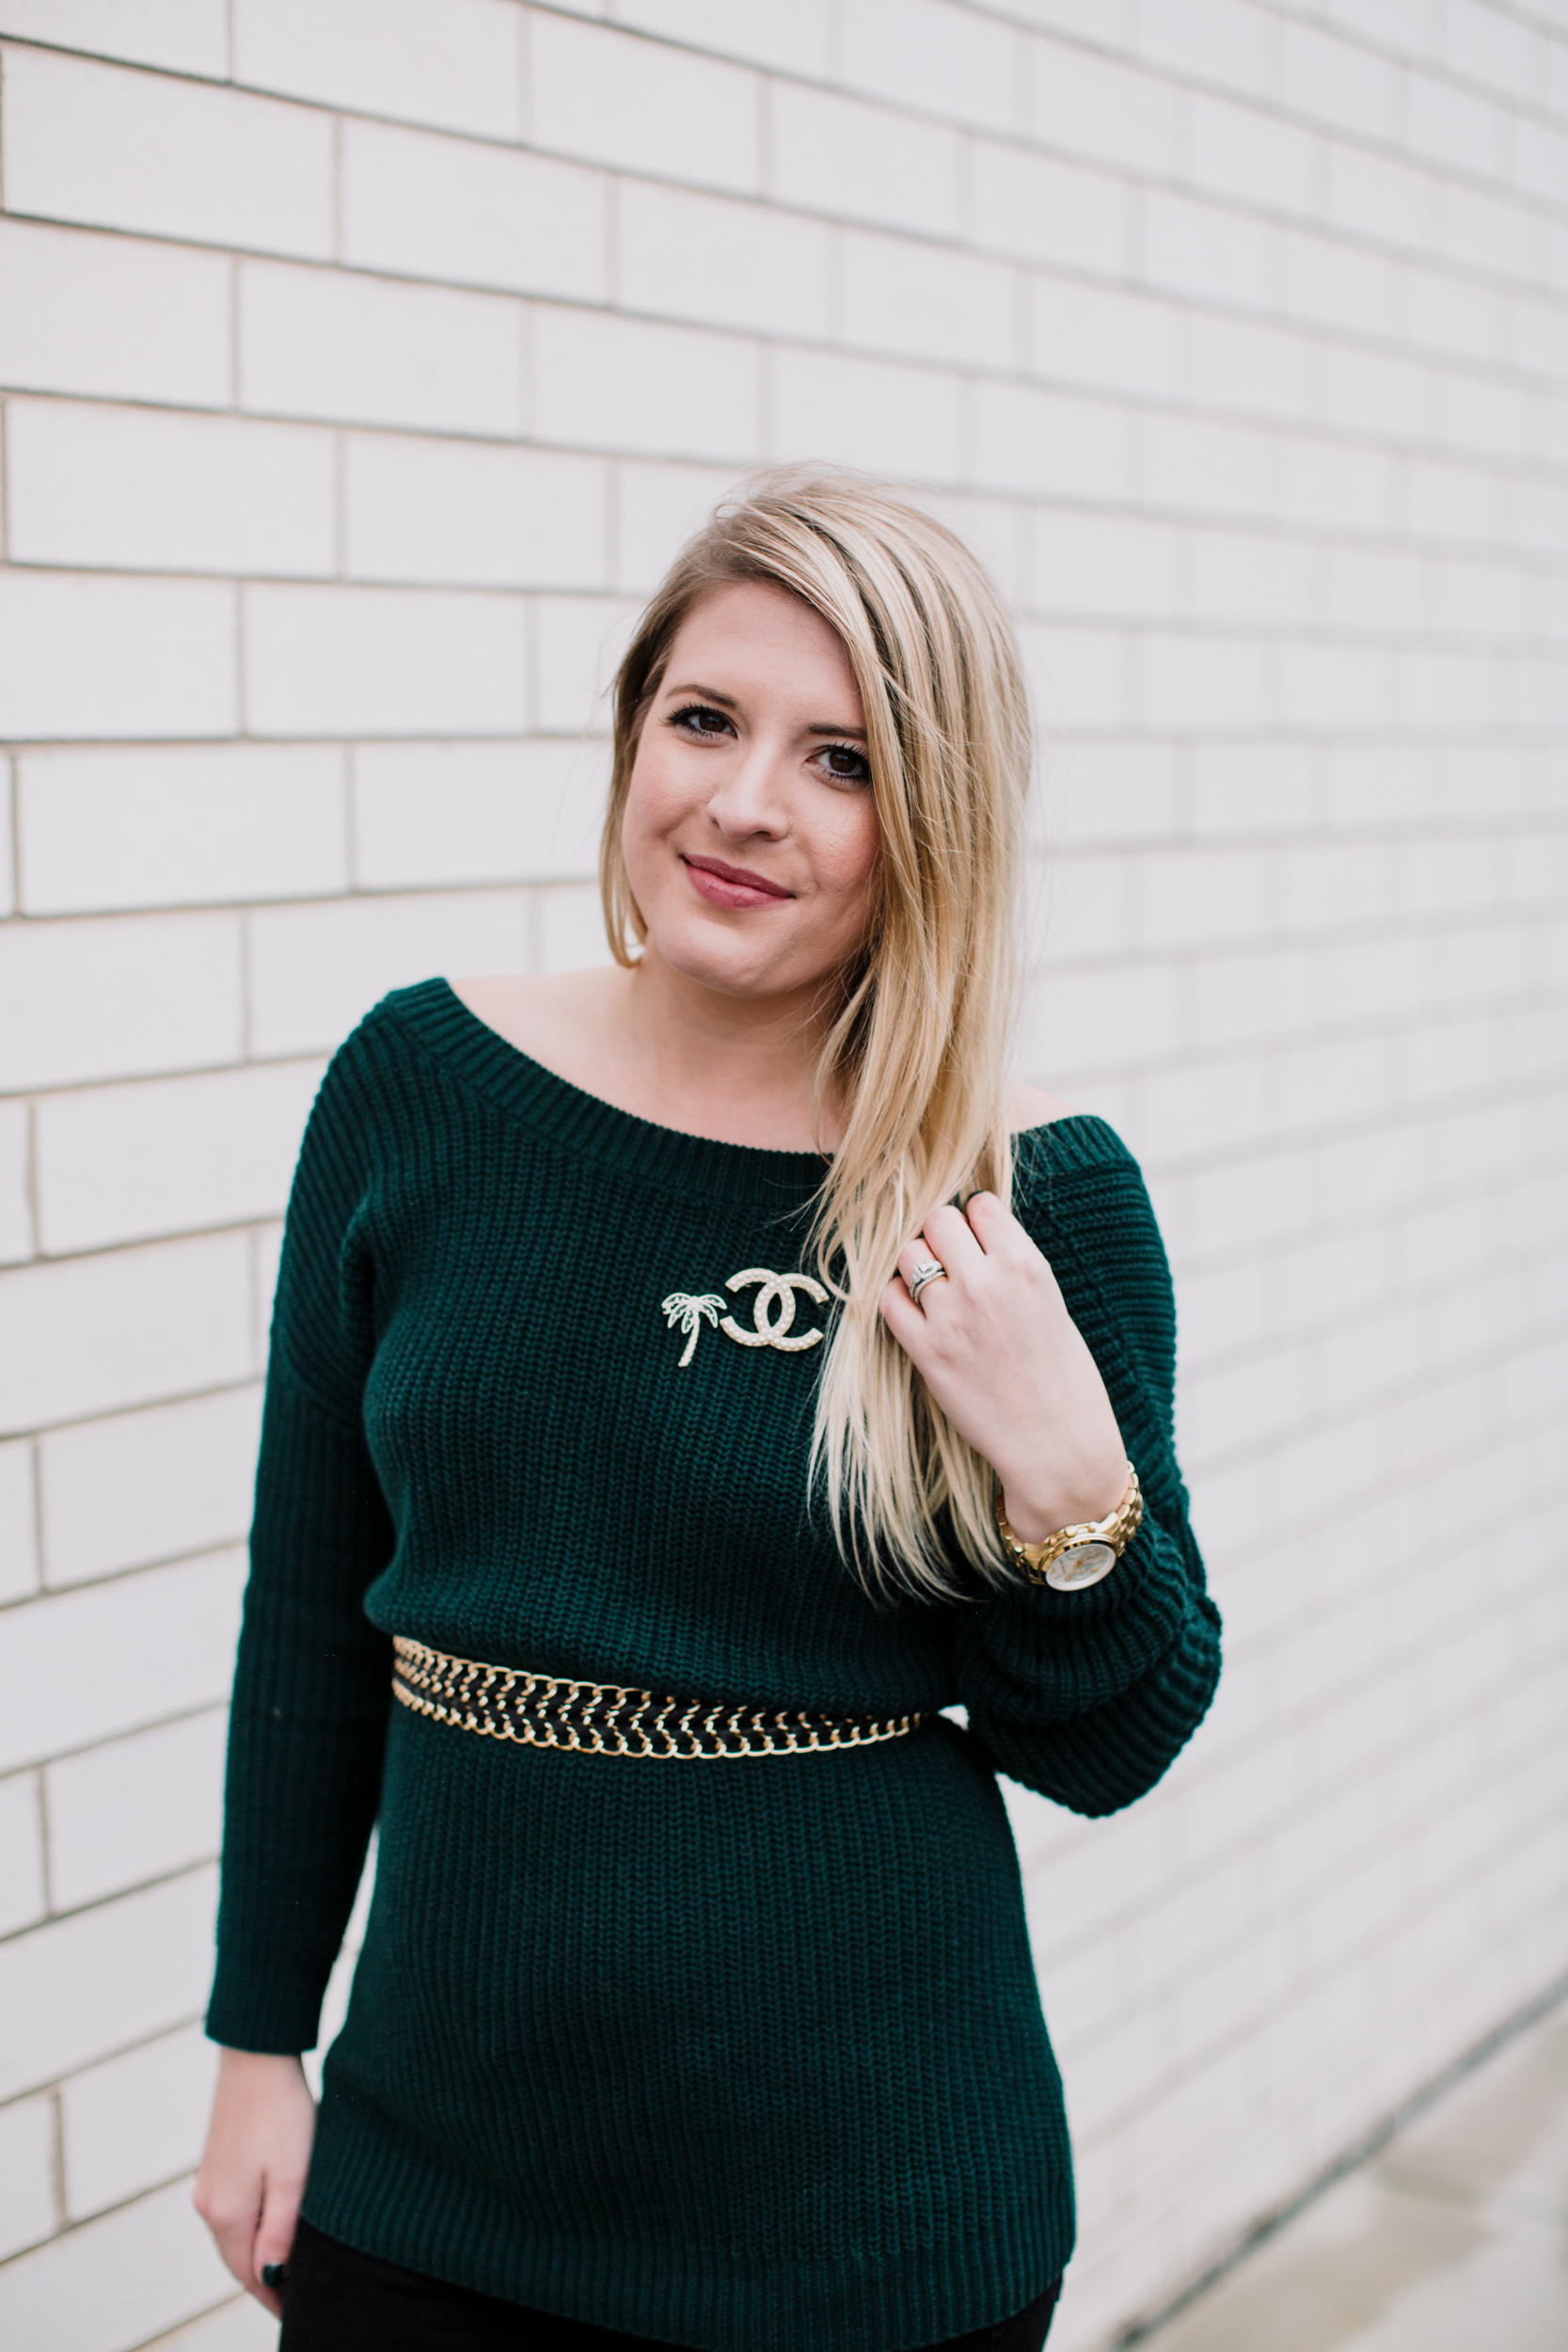 Mixing Designer and Bargain Fashion Pieces